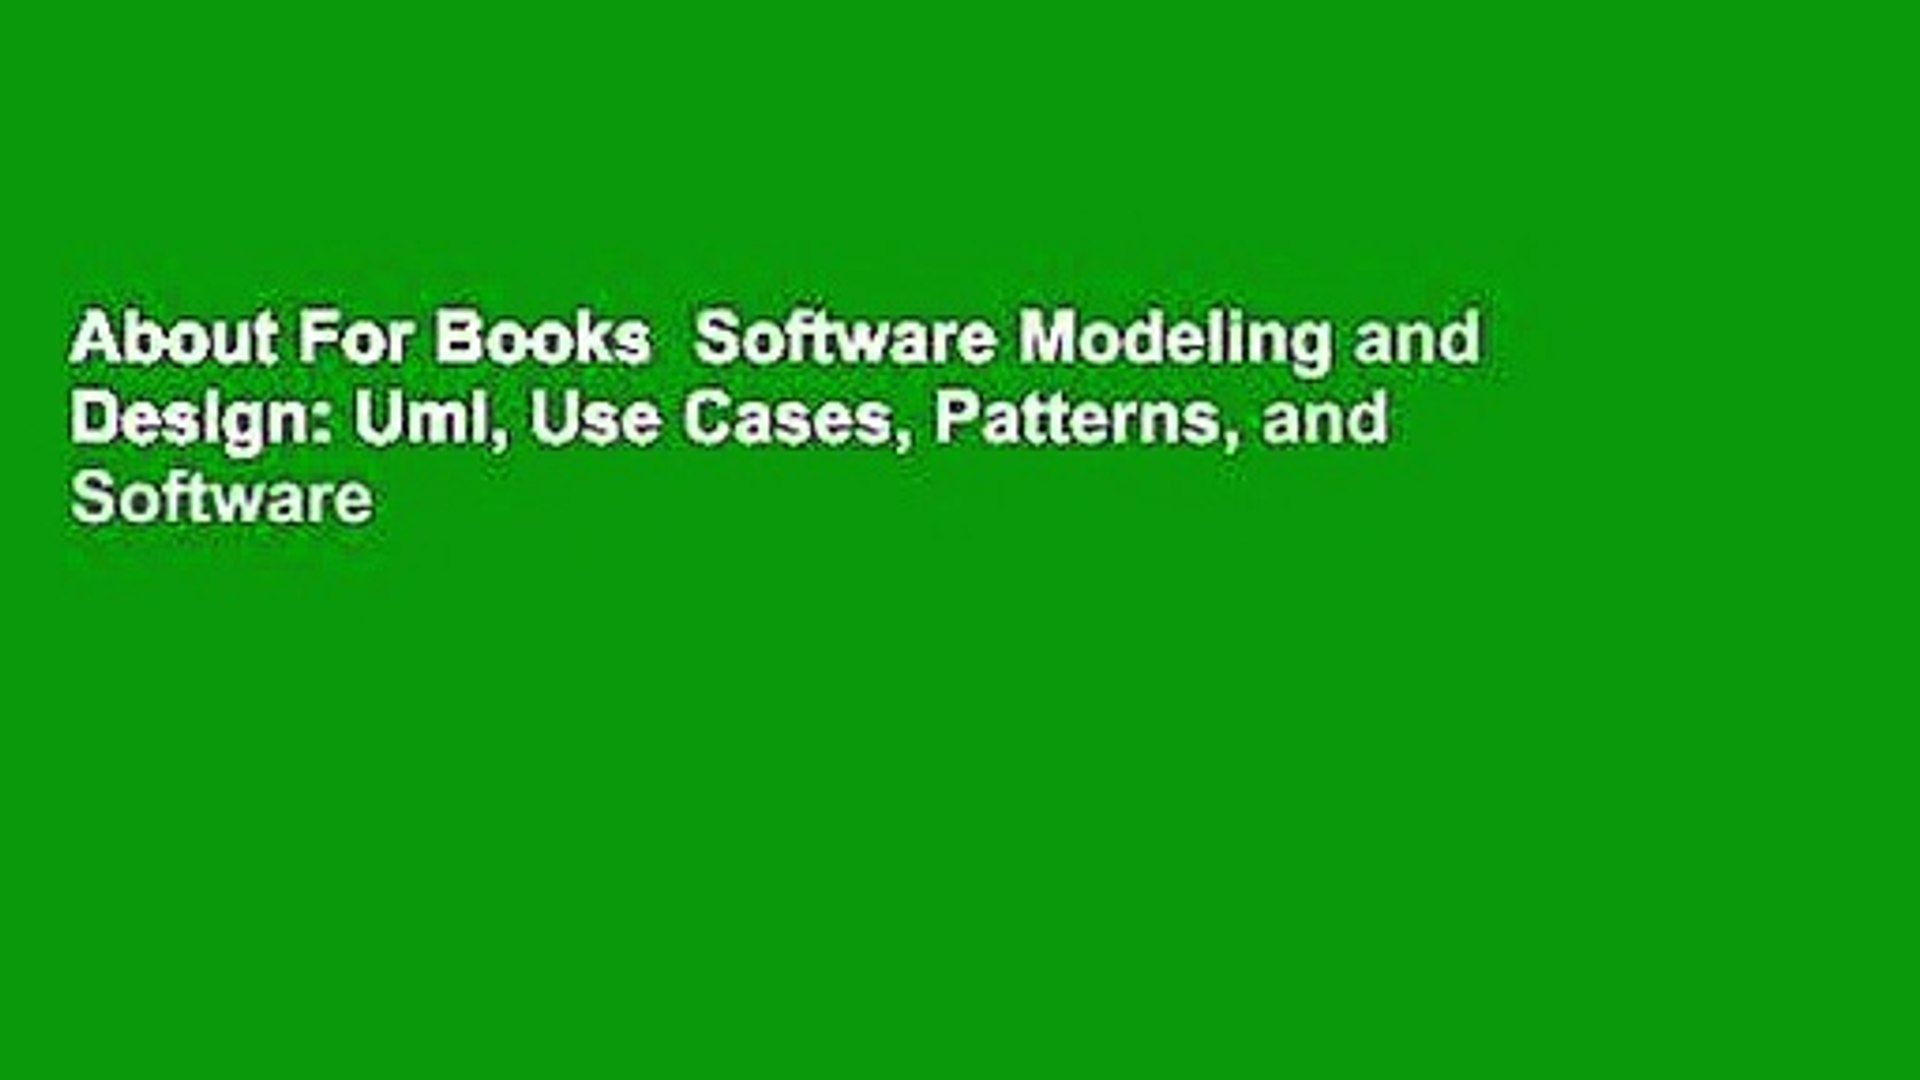 About For Books  Software Modeling and Design: Uml, Use Cases, Patterns, and Software